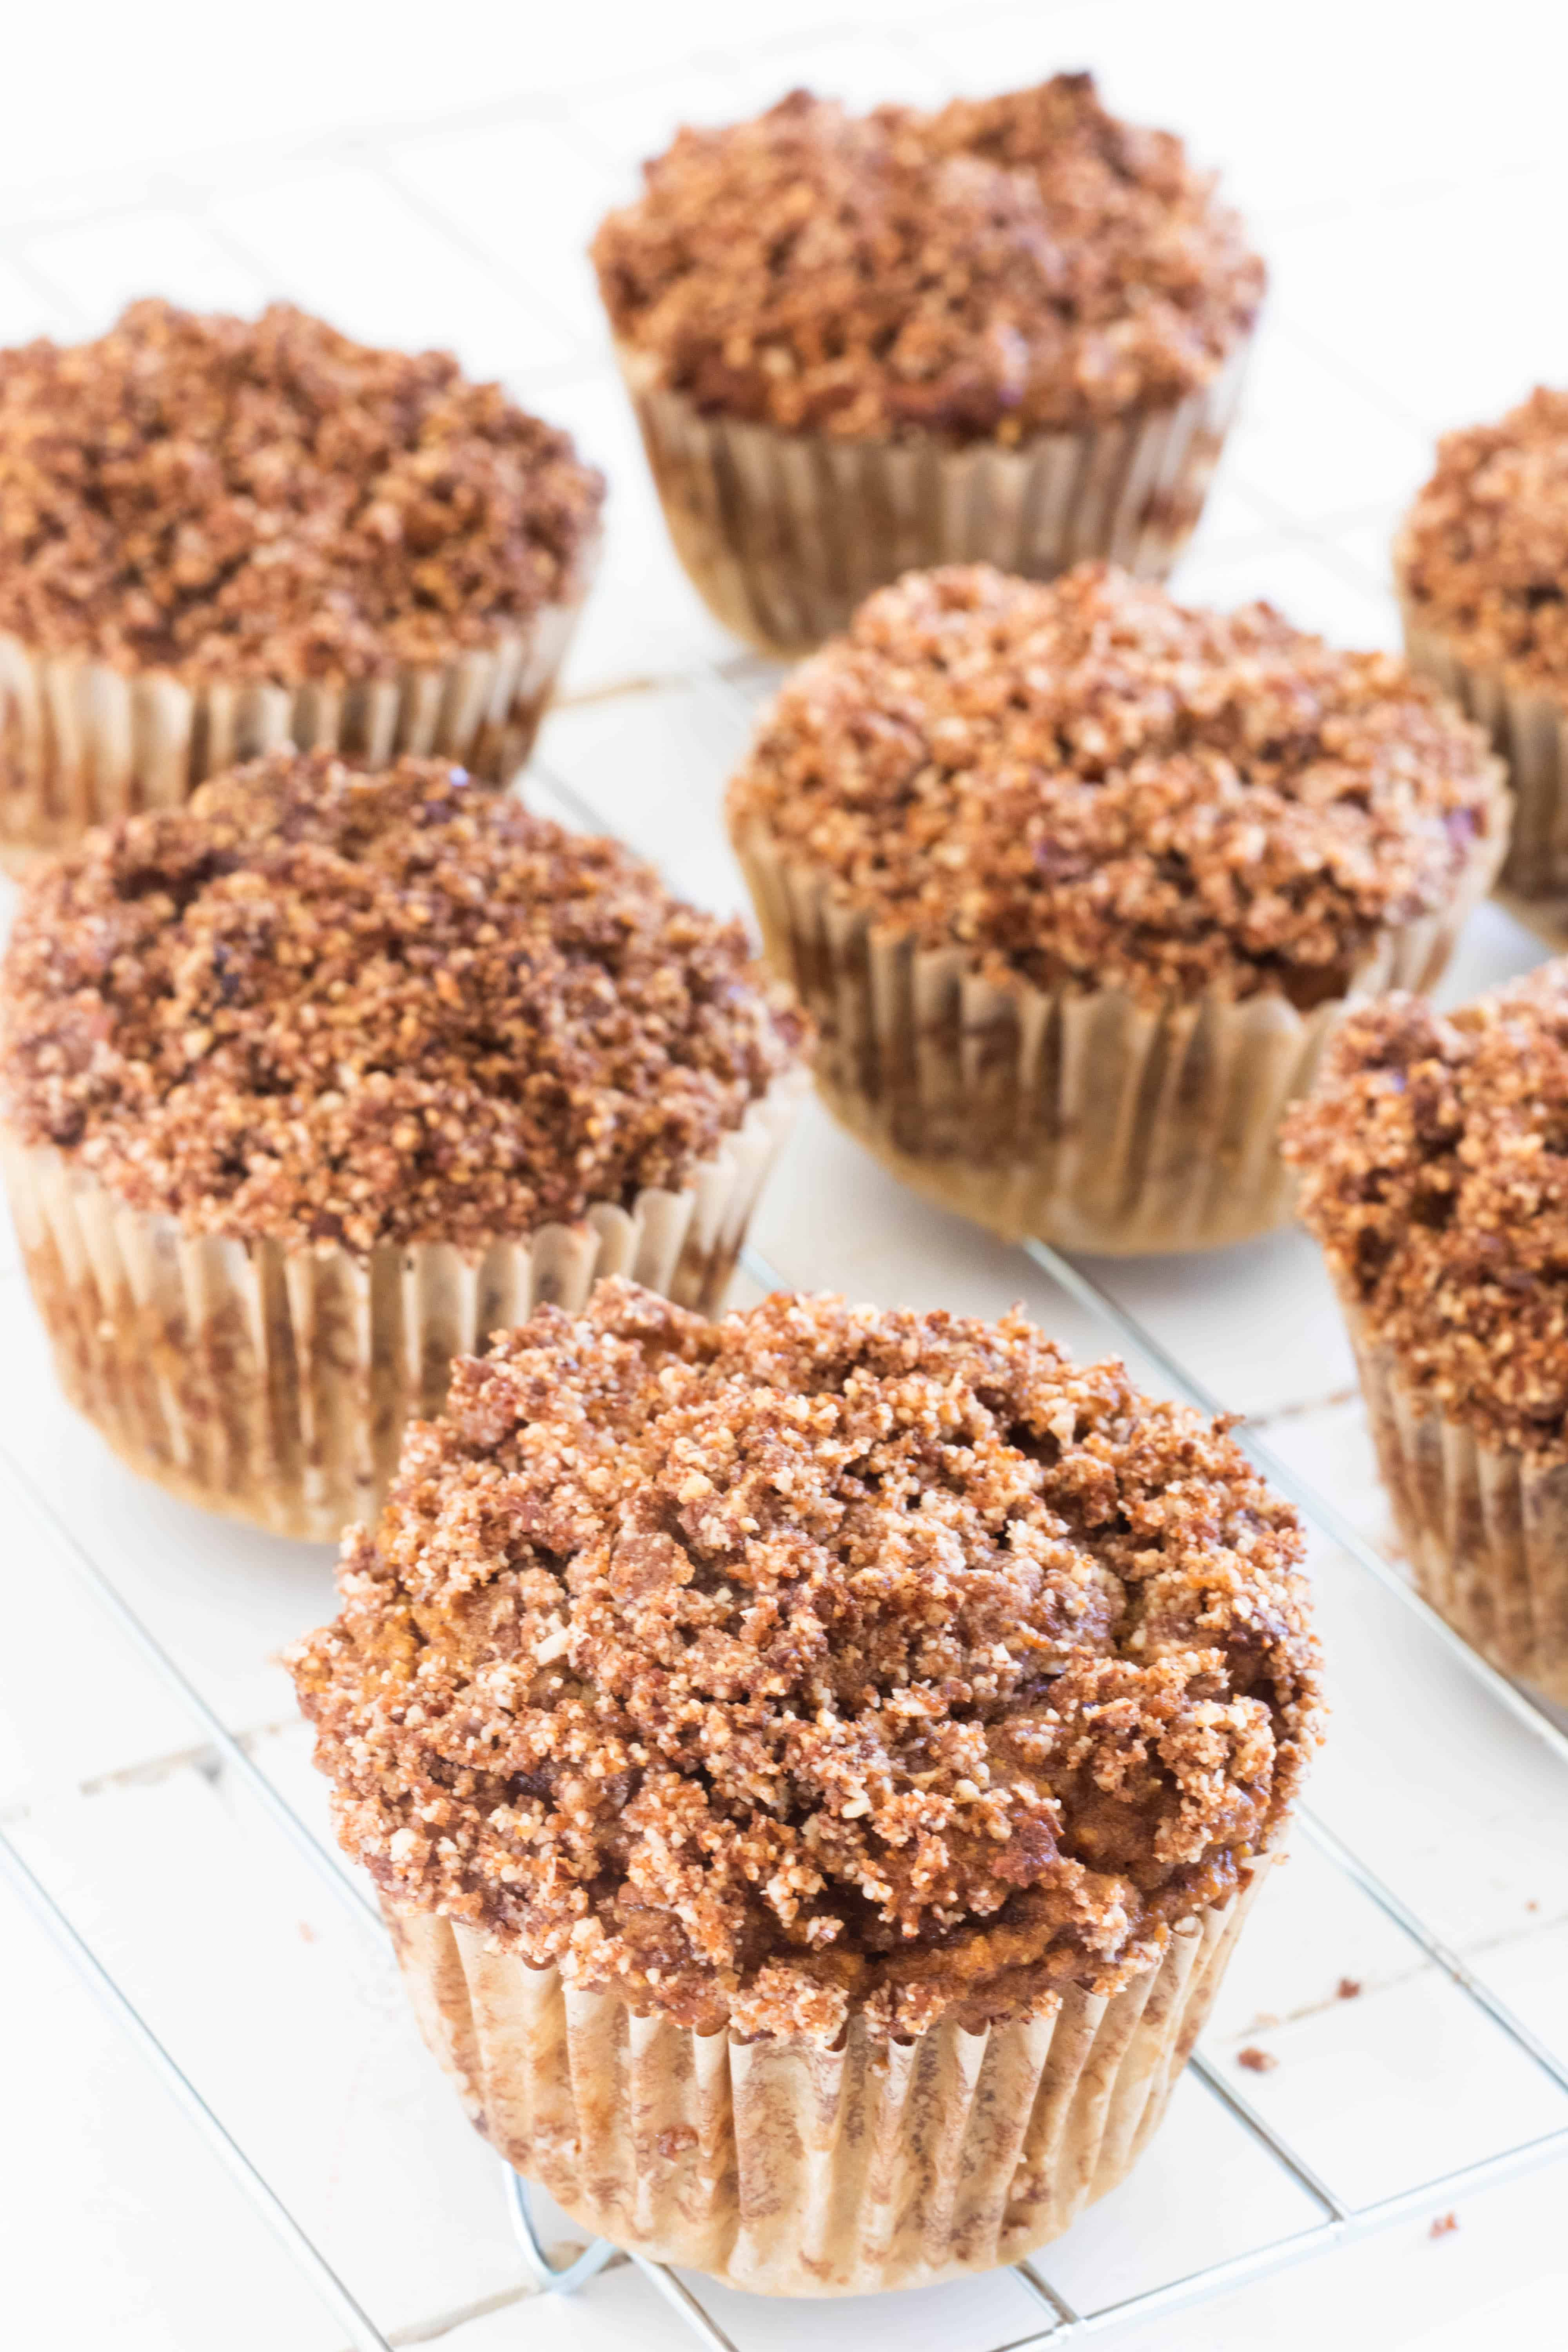 Muffins with crumble topping on drying rack on white table.